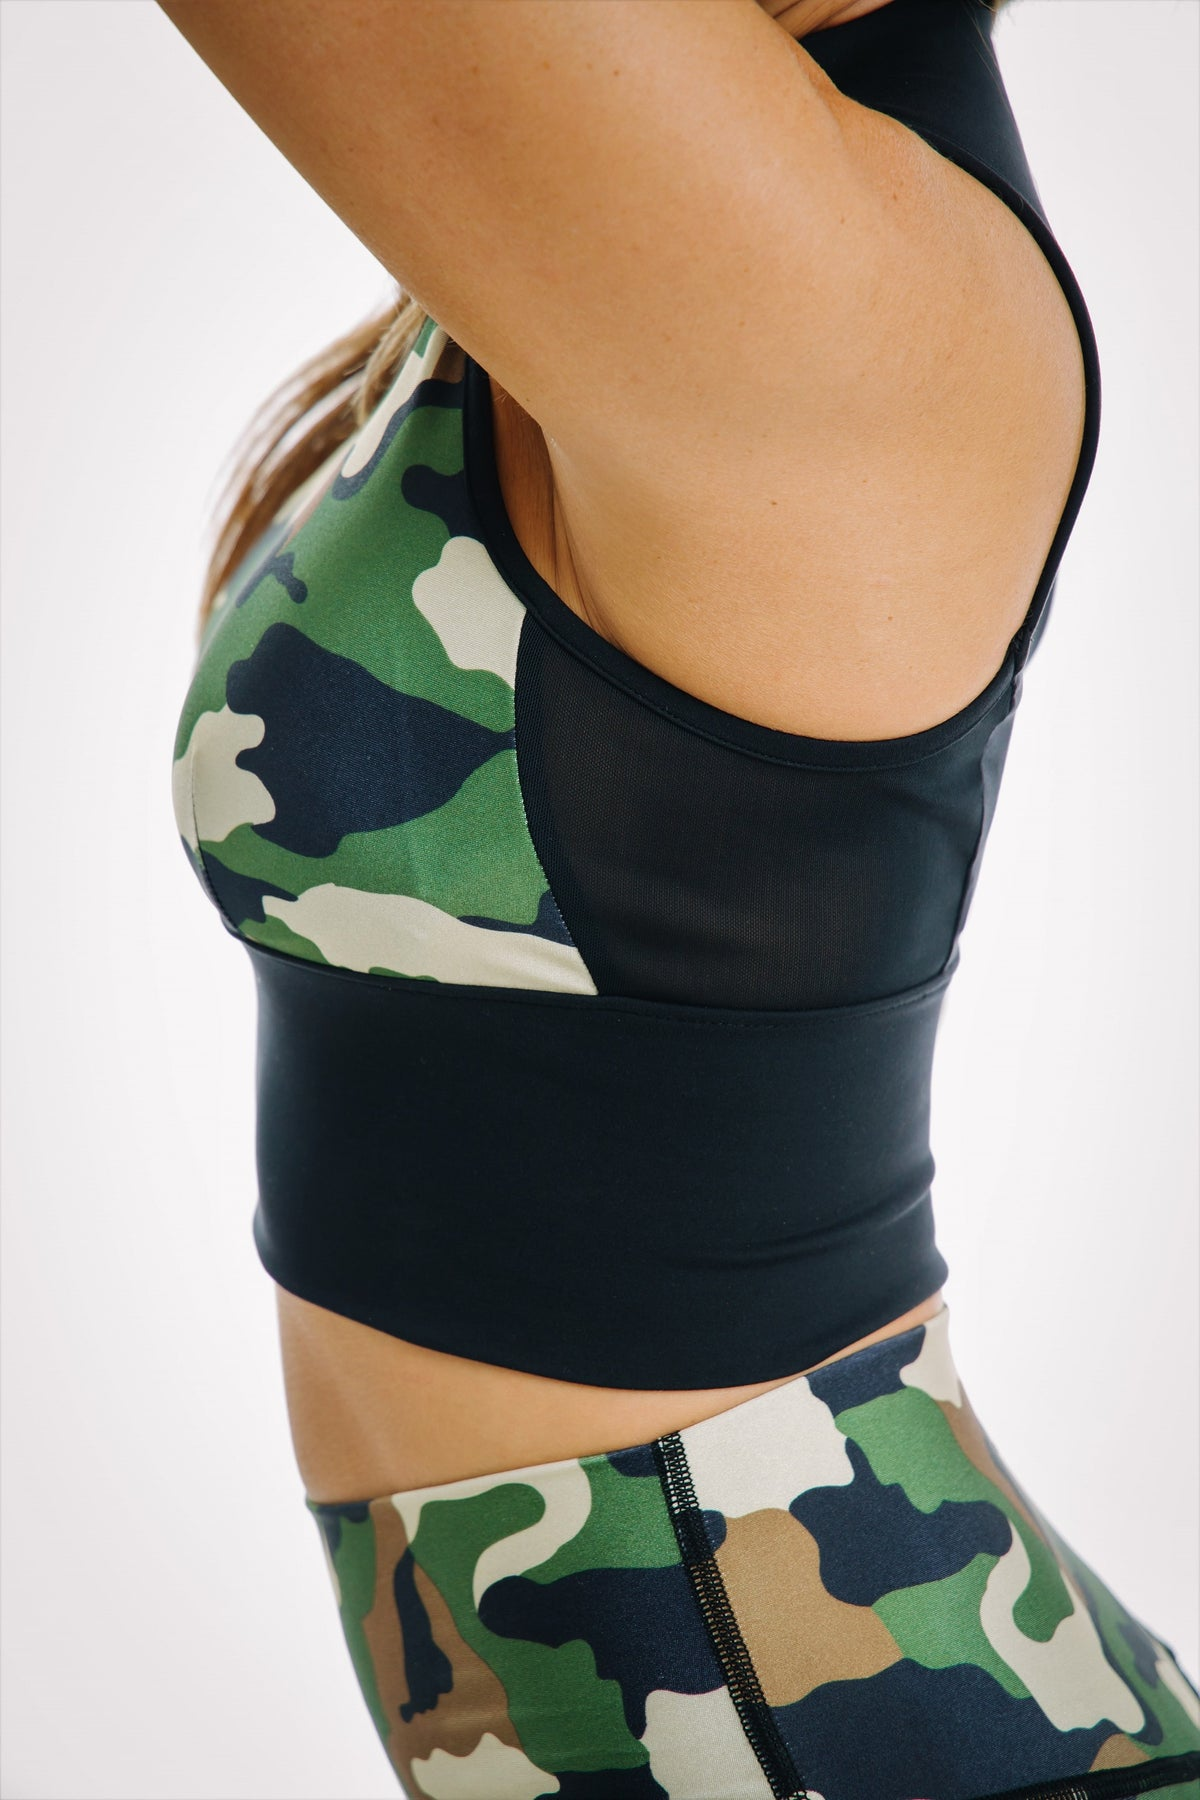 Camo athletic top sports bra with mesh